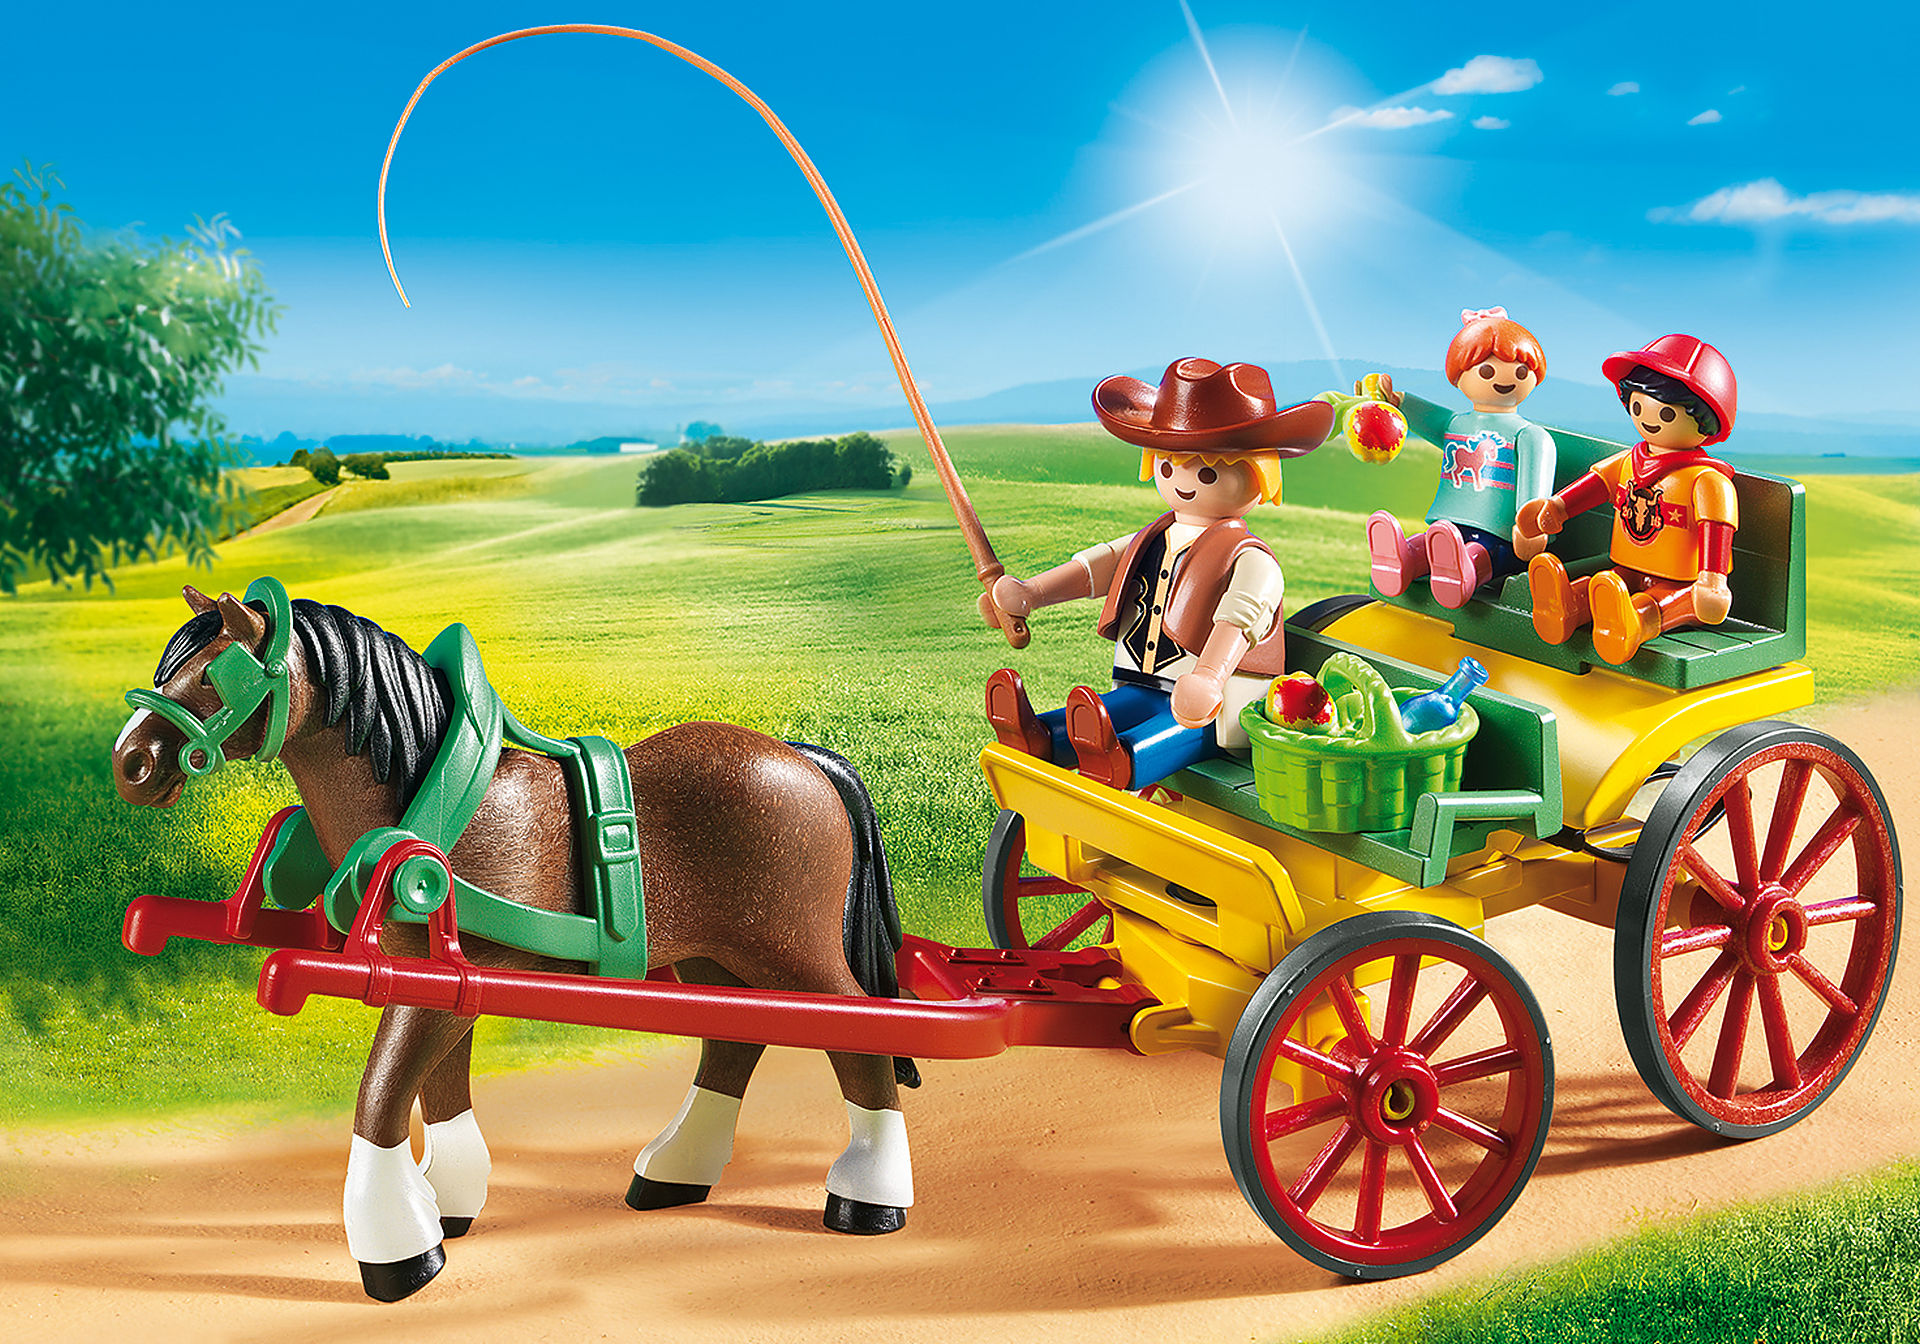 http://media.playmobil.com/i/playmobil/6932_product_detail/Horse-Drawn Wagon